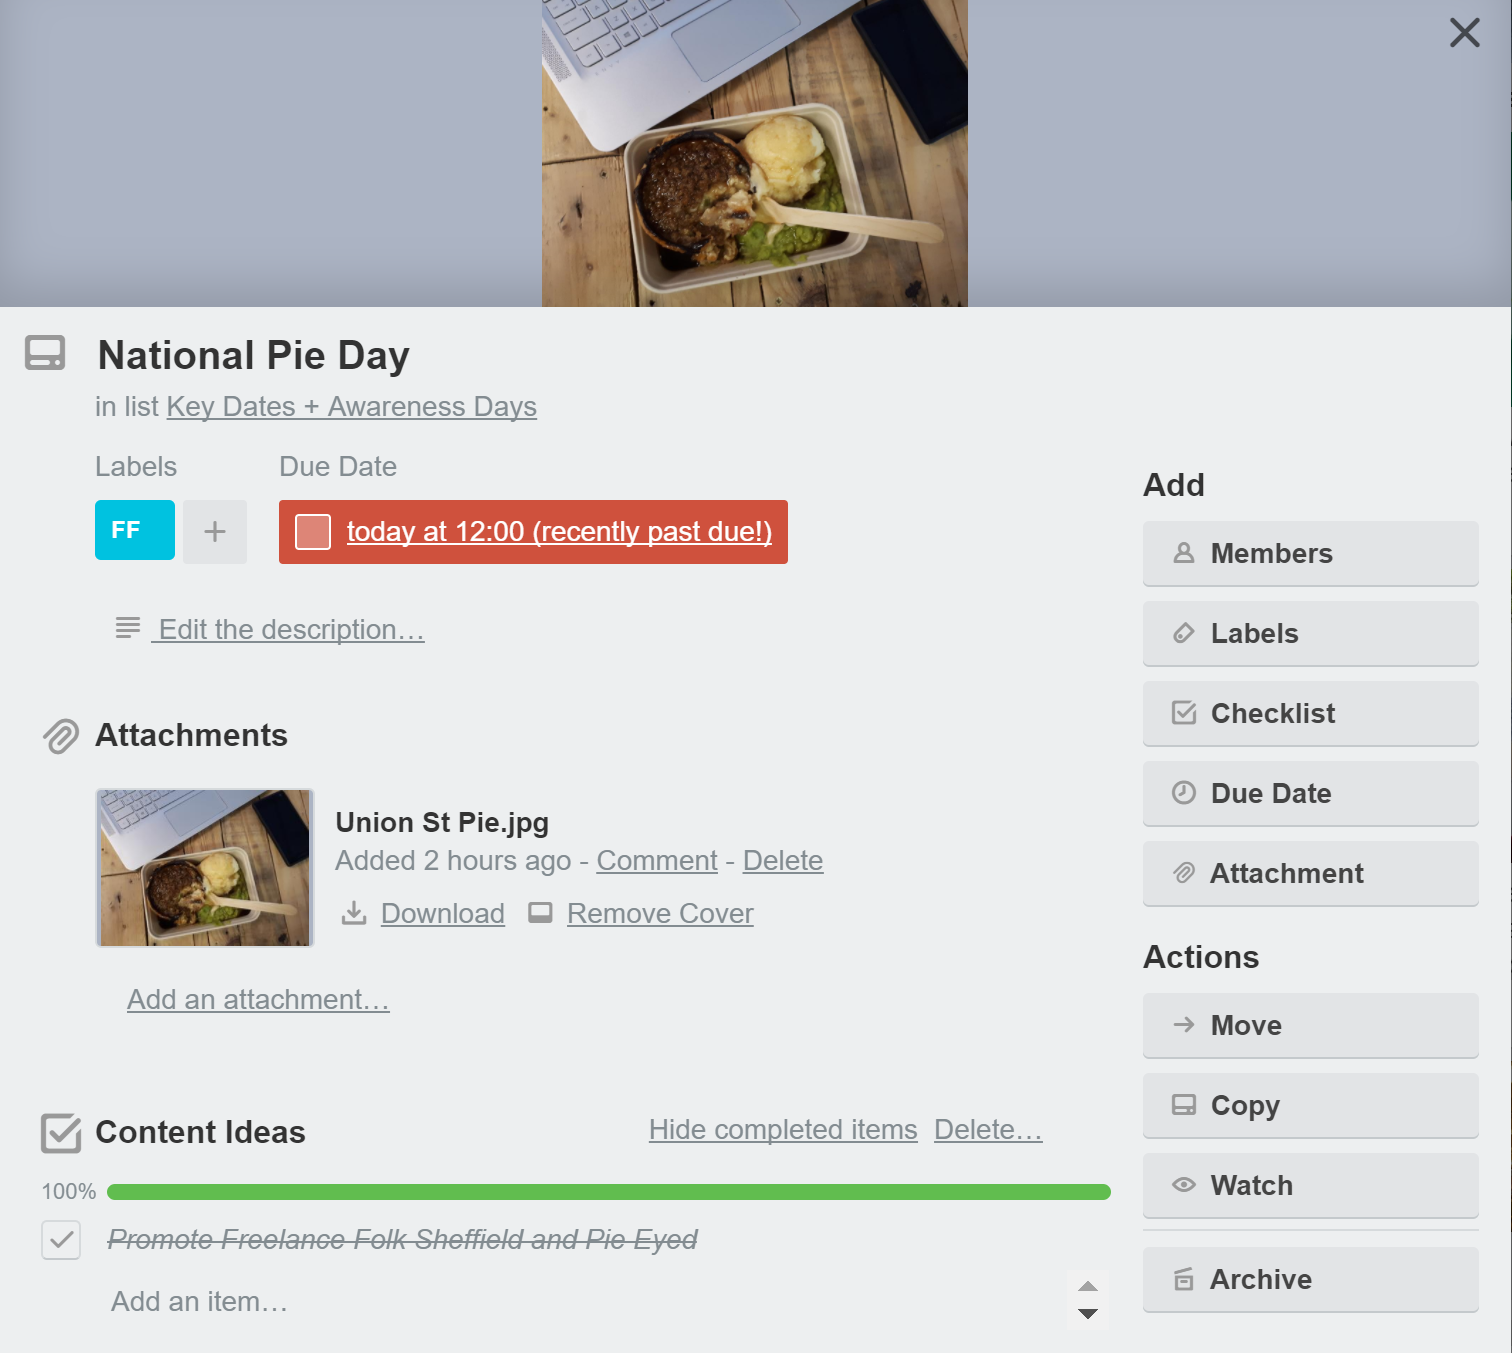 My Trello card for National Pie Day -